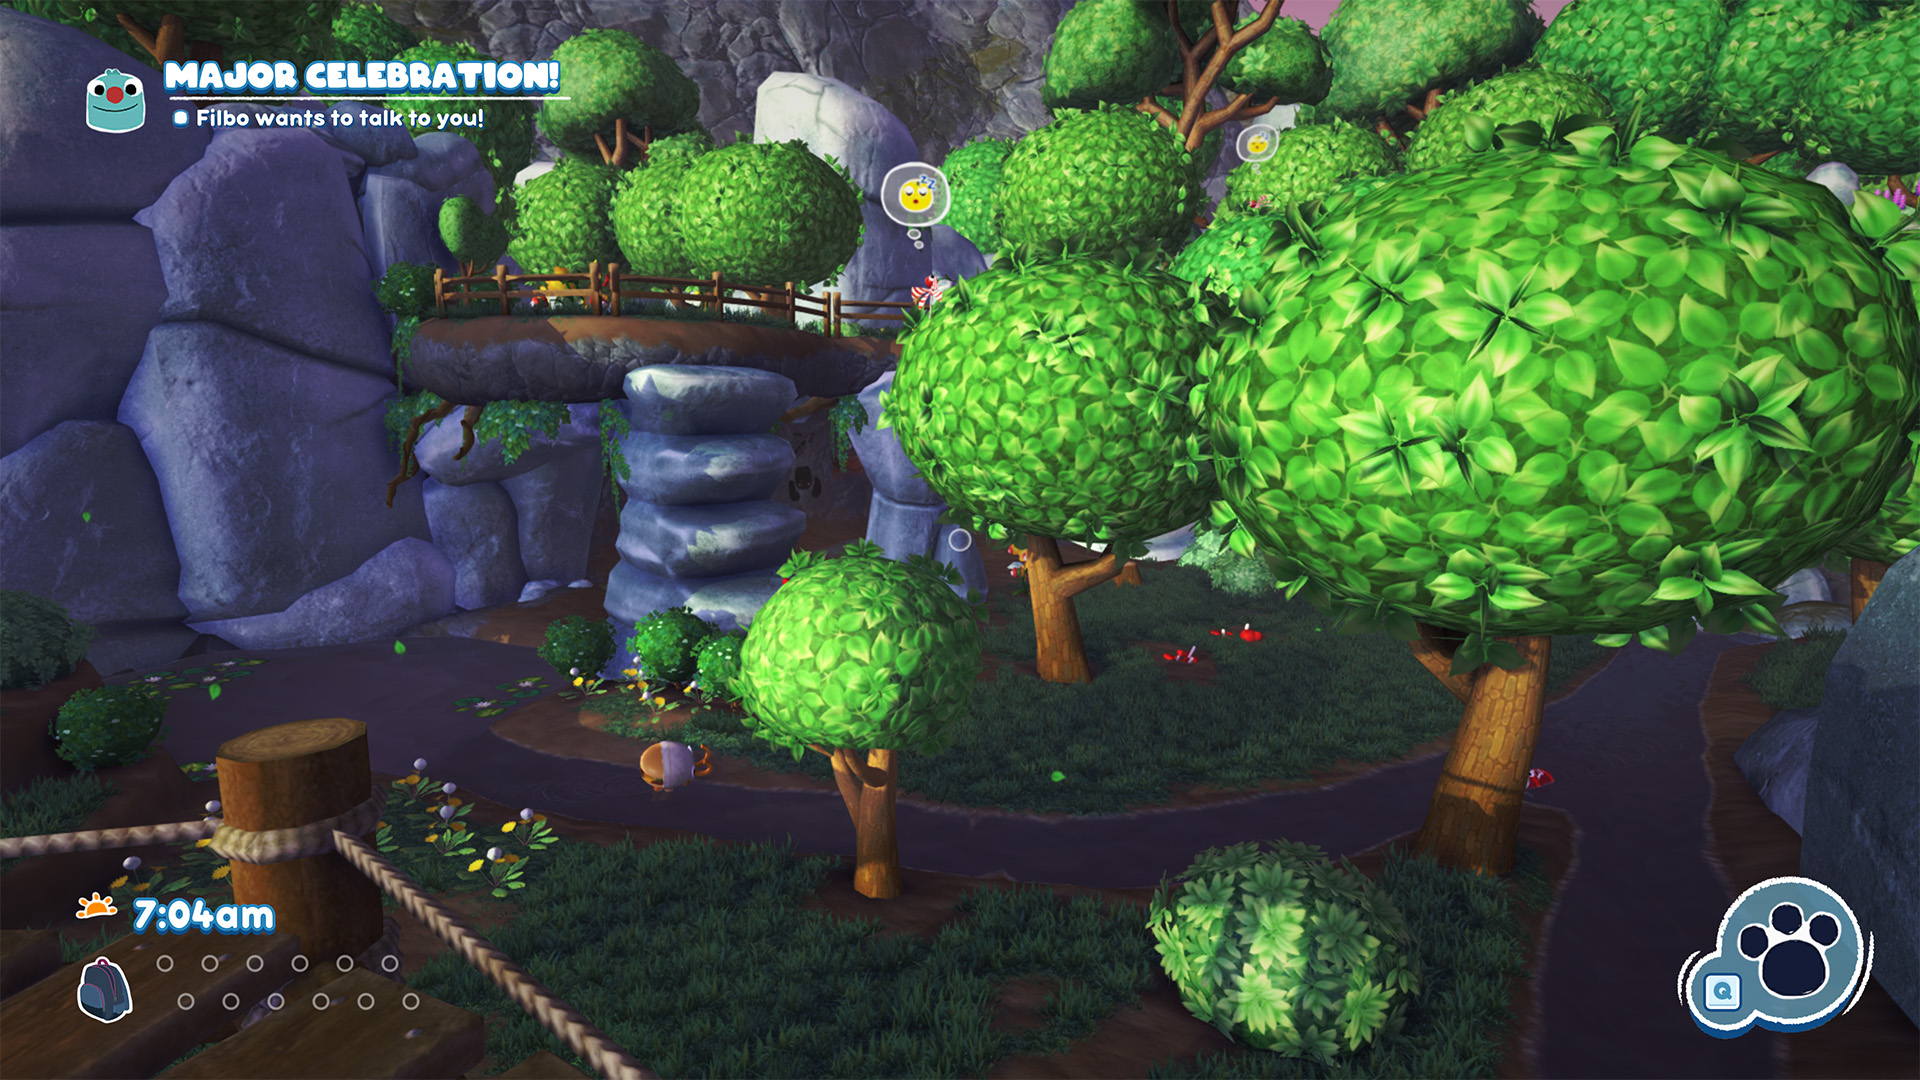 One of the self-contained puzzle areas in Bugsnax. There are several levels, with threes and platforms, and different bugsnax are visible sleeping or ambling around